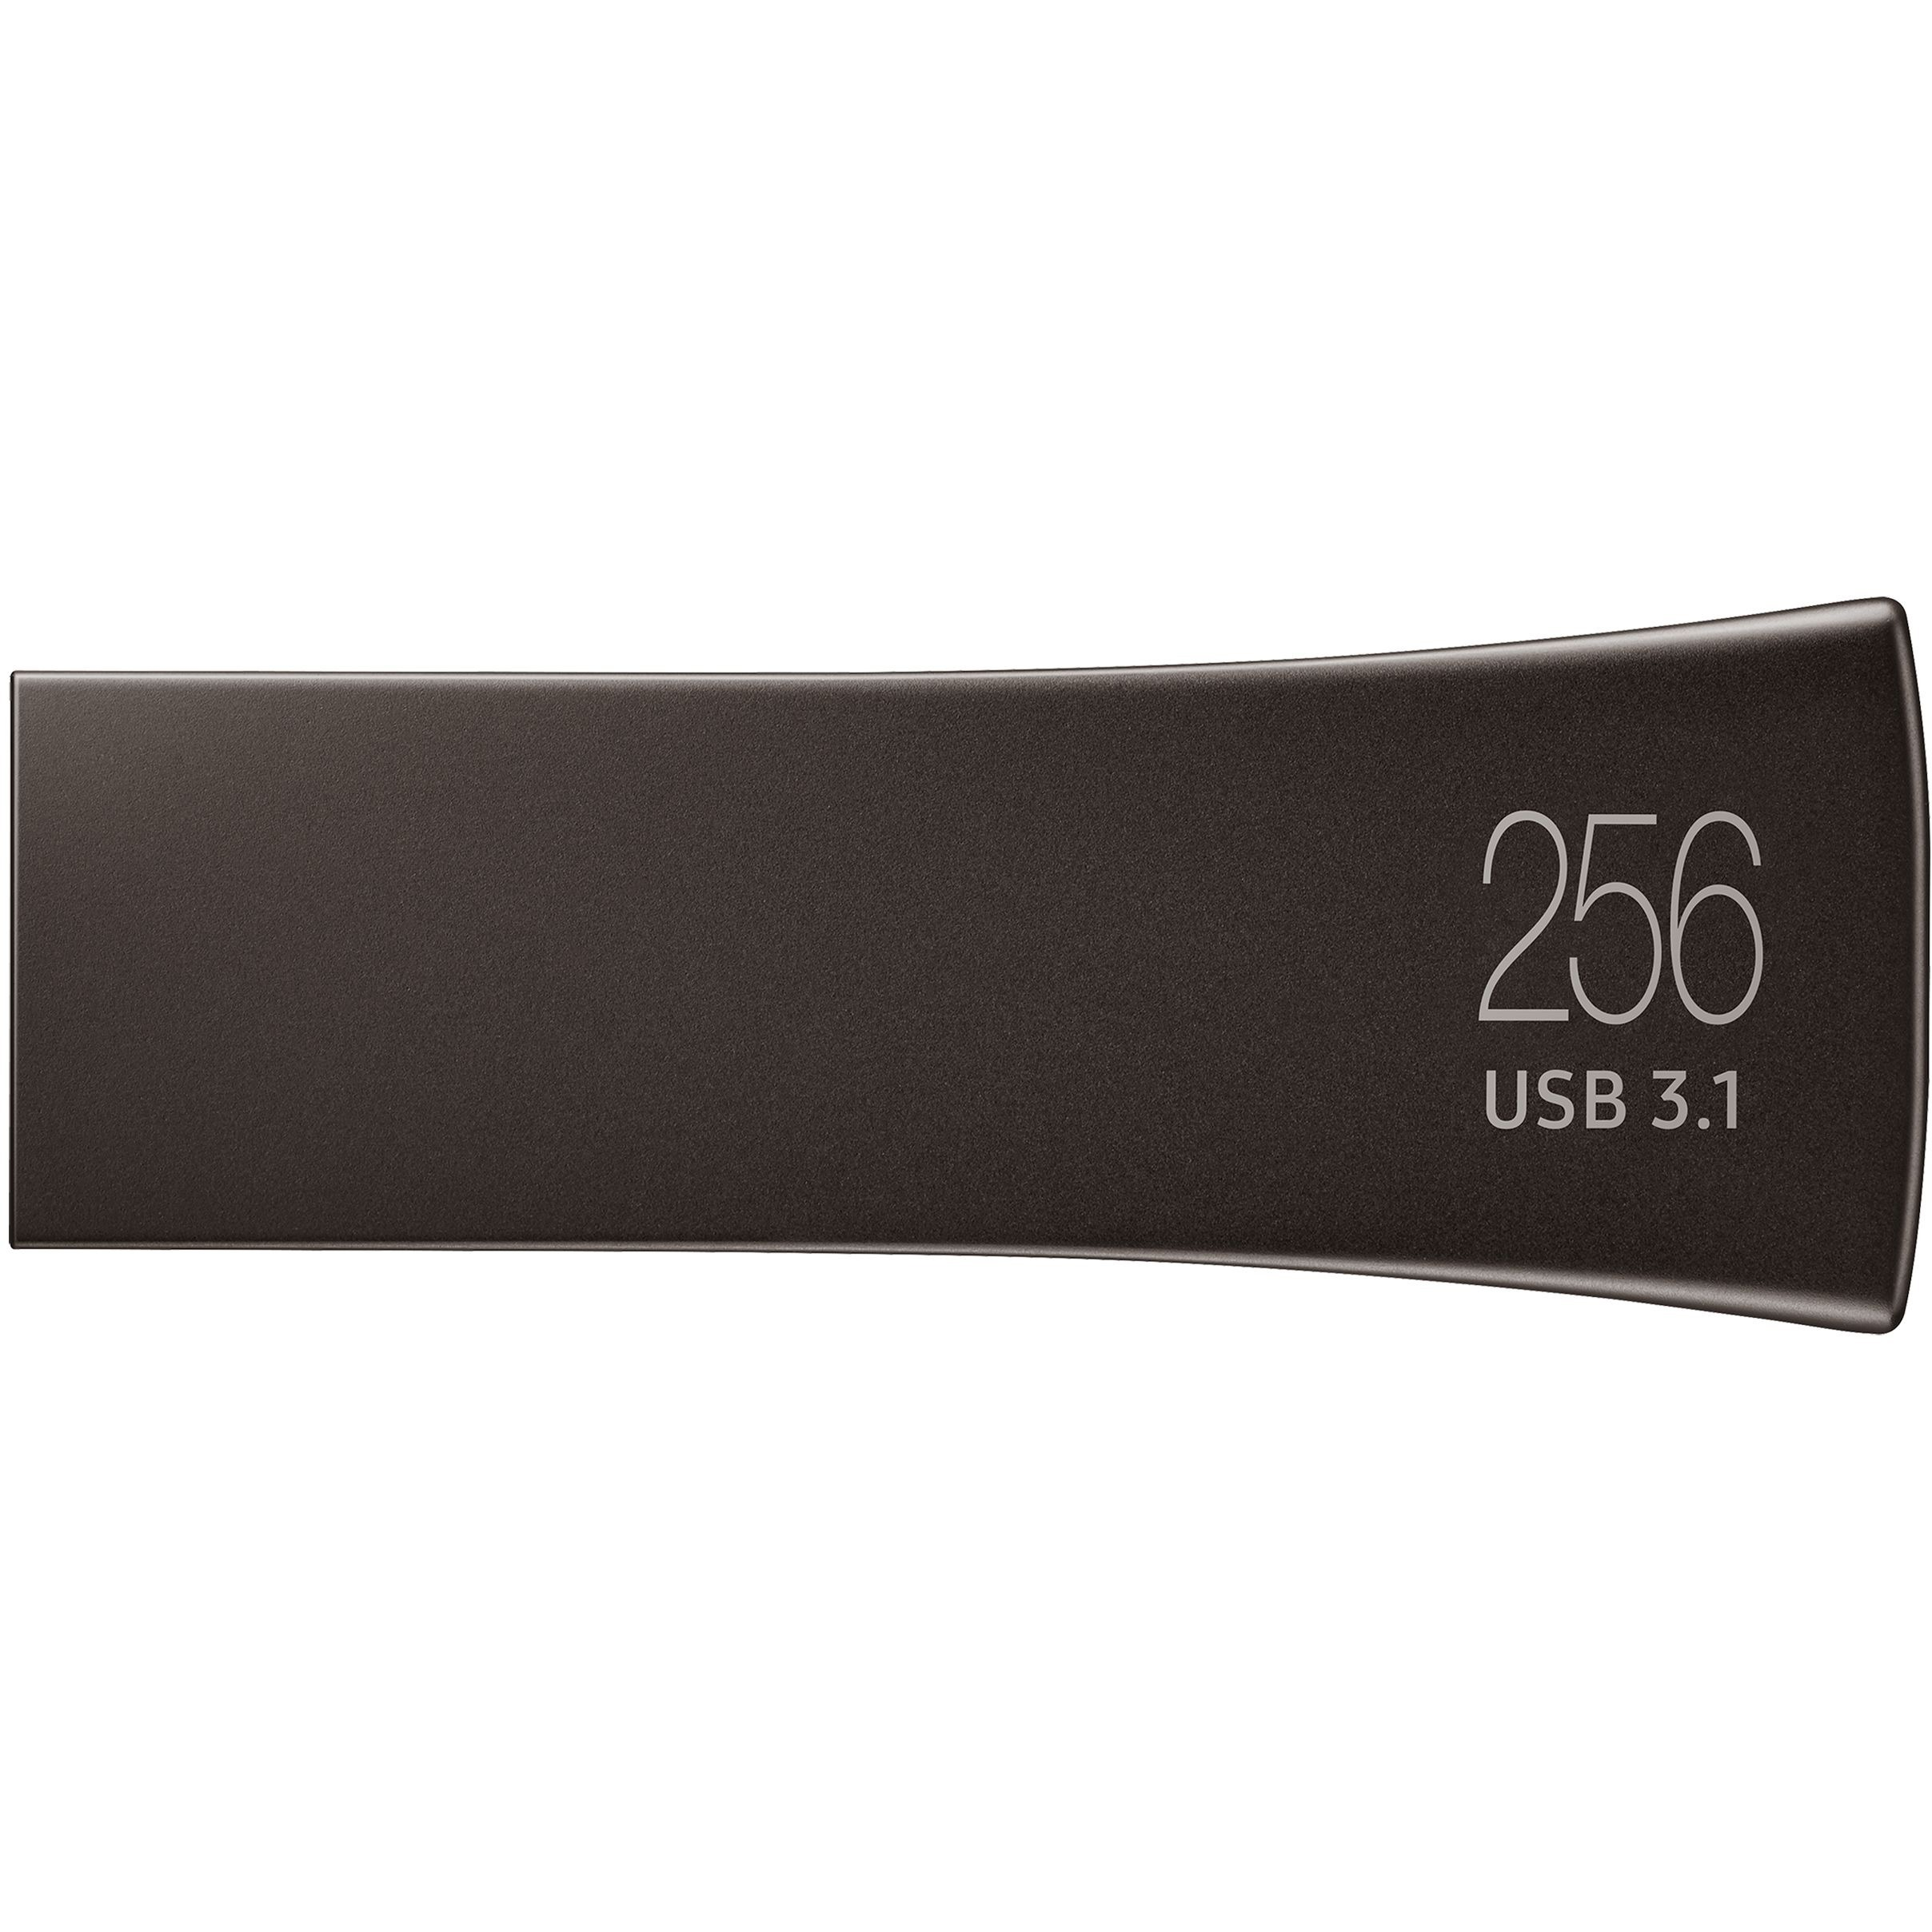 Samsung BAR Plus 256 GB USB 3.1 Type A Flash Drive - Titanium Grey